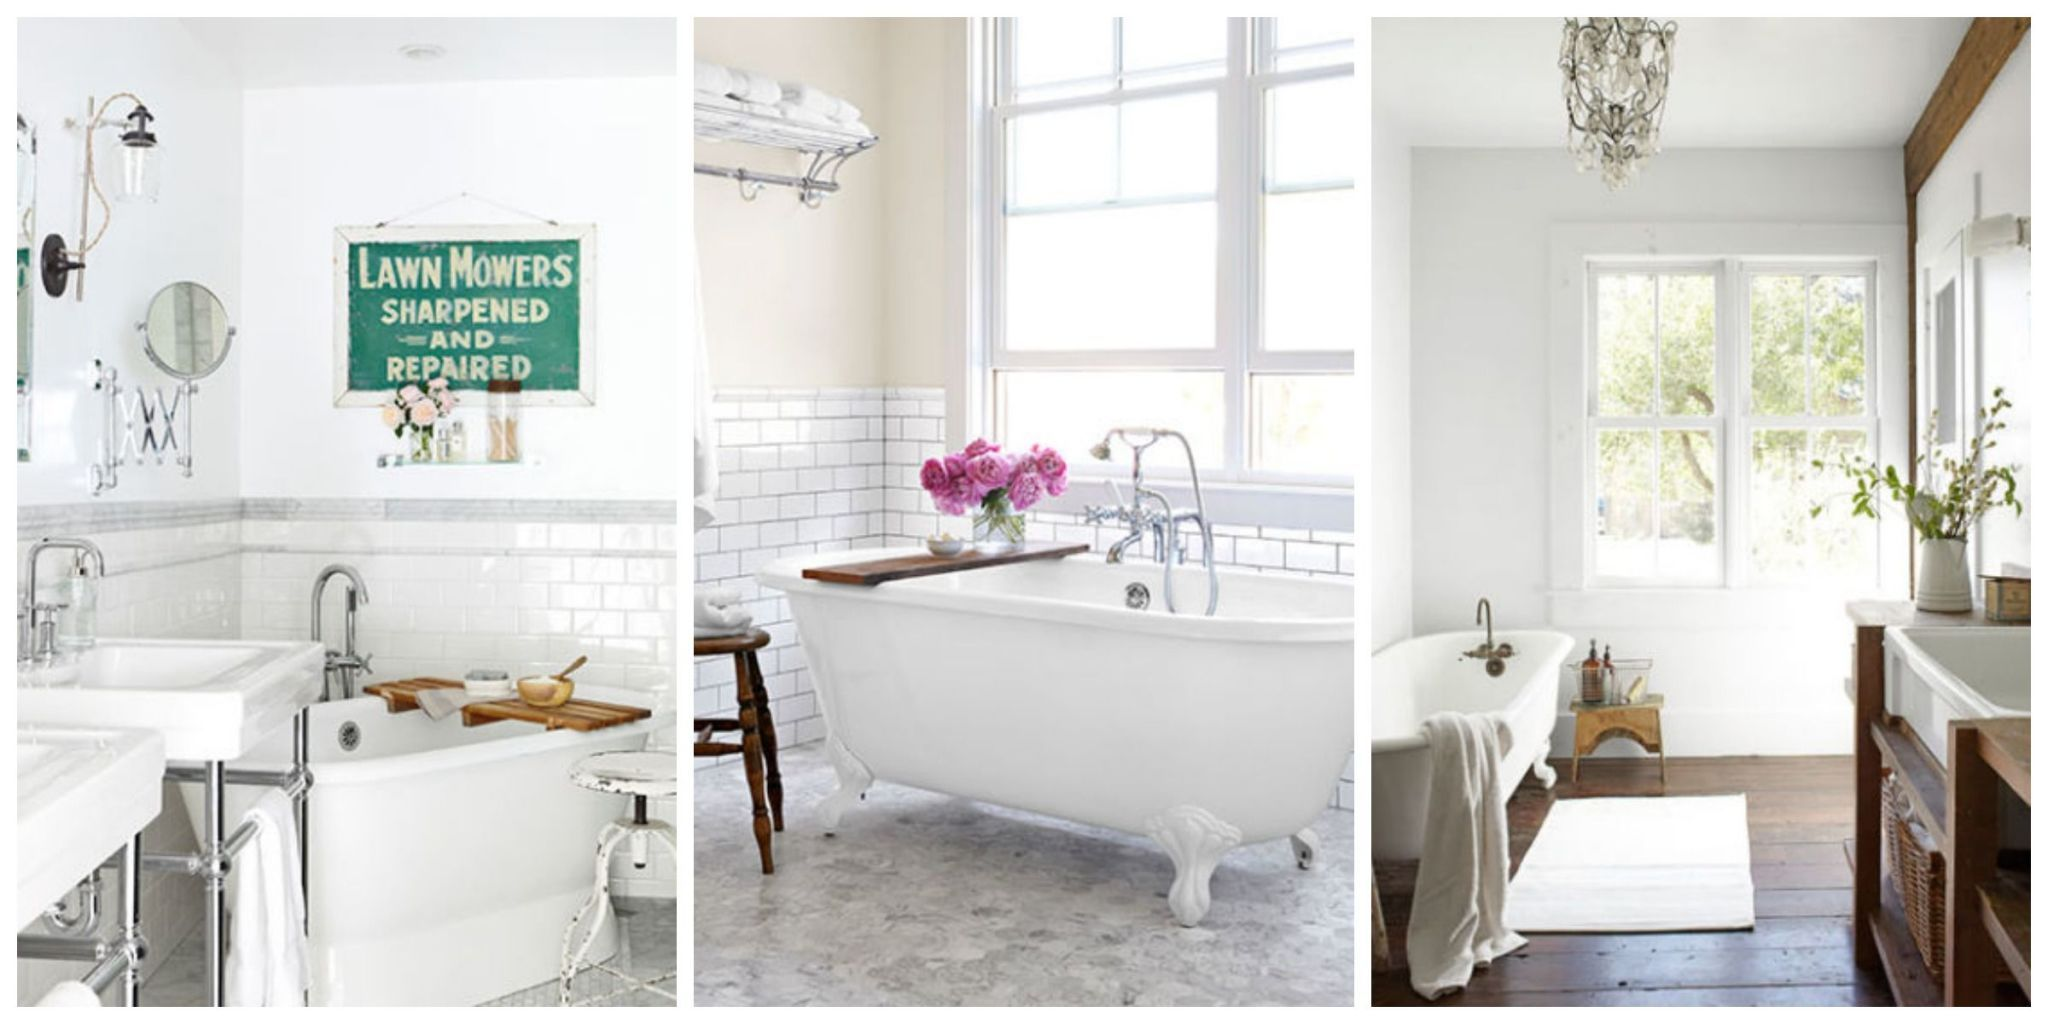 30 white bathroom ideas decorating with white for bathrooms rh countryliving com white bedroom designs 2019 white bedroom designs 2019